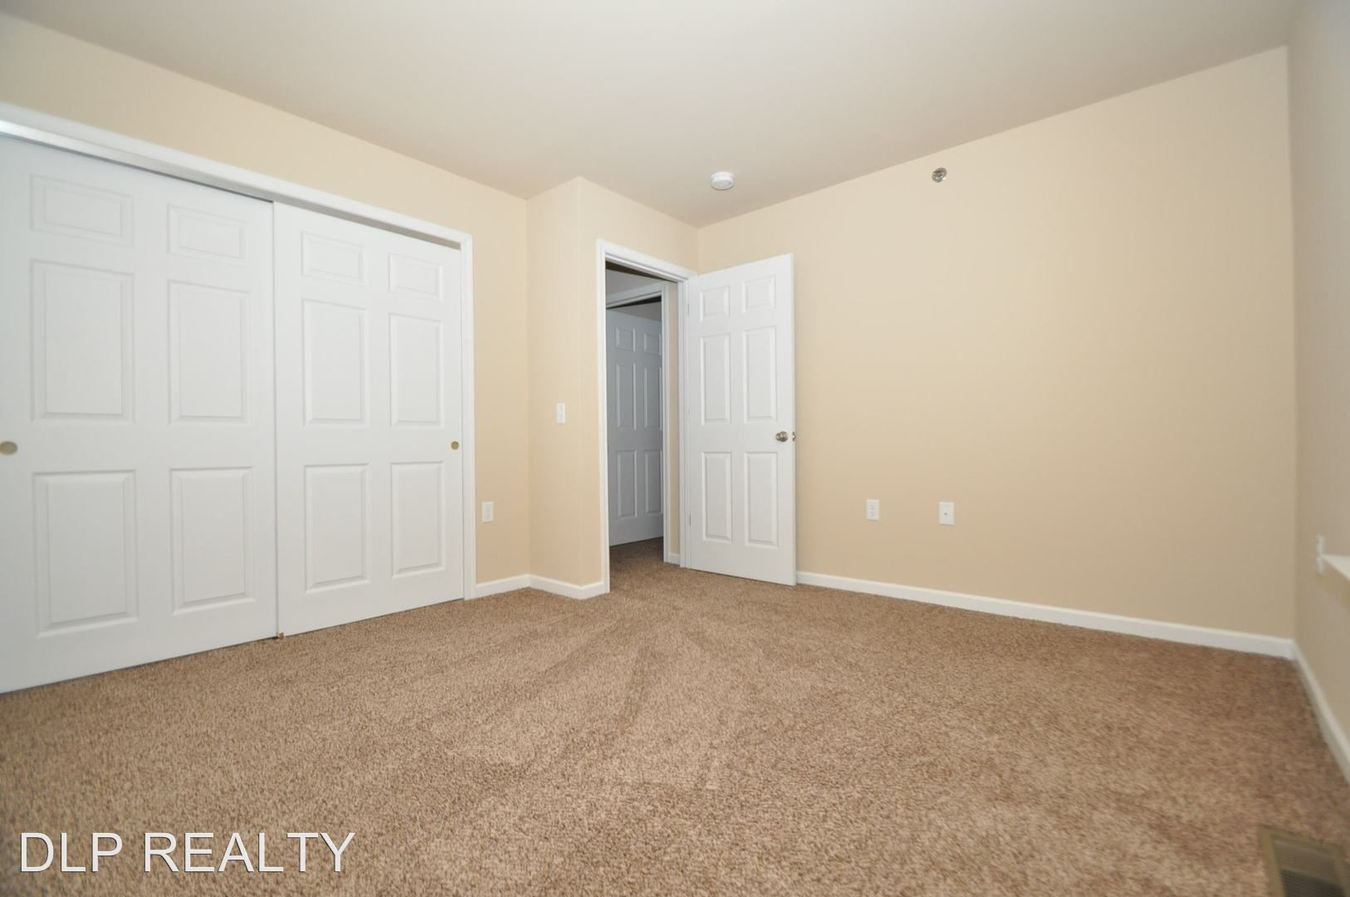 4 Bedrooms 3 Bathrooms Apartment for rent at 305 Cervina Court in East Stroudsburg, PA